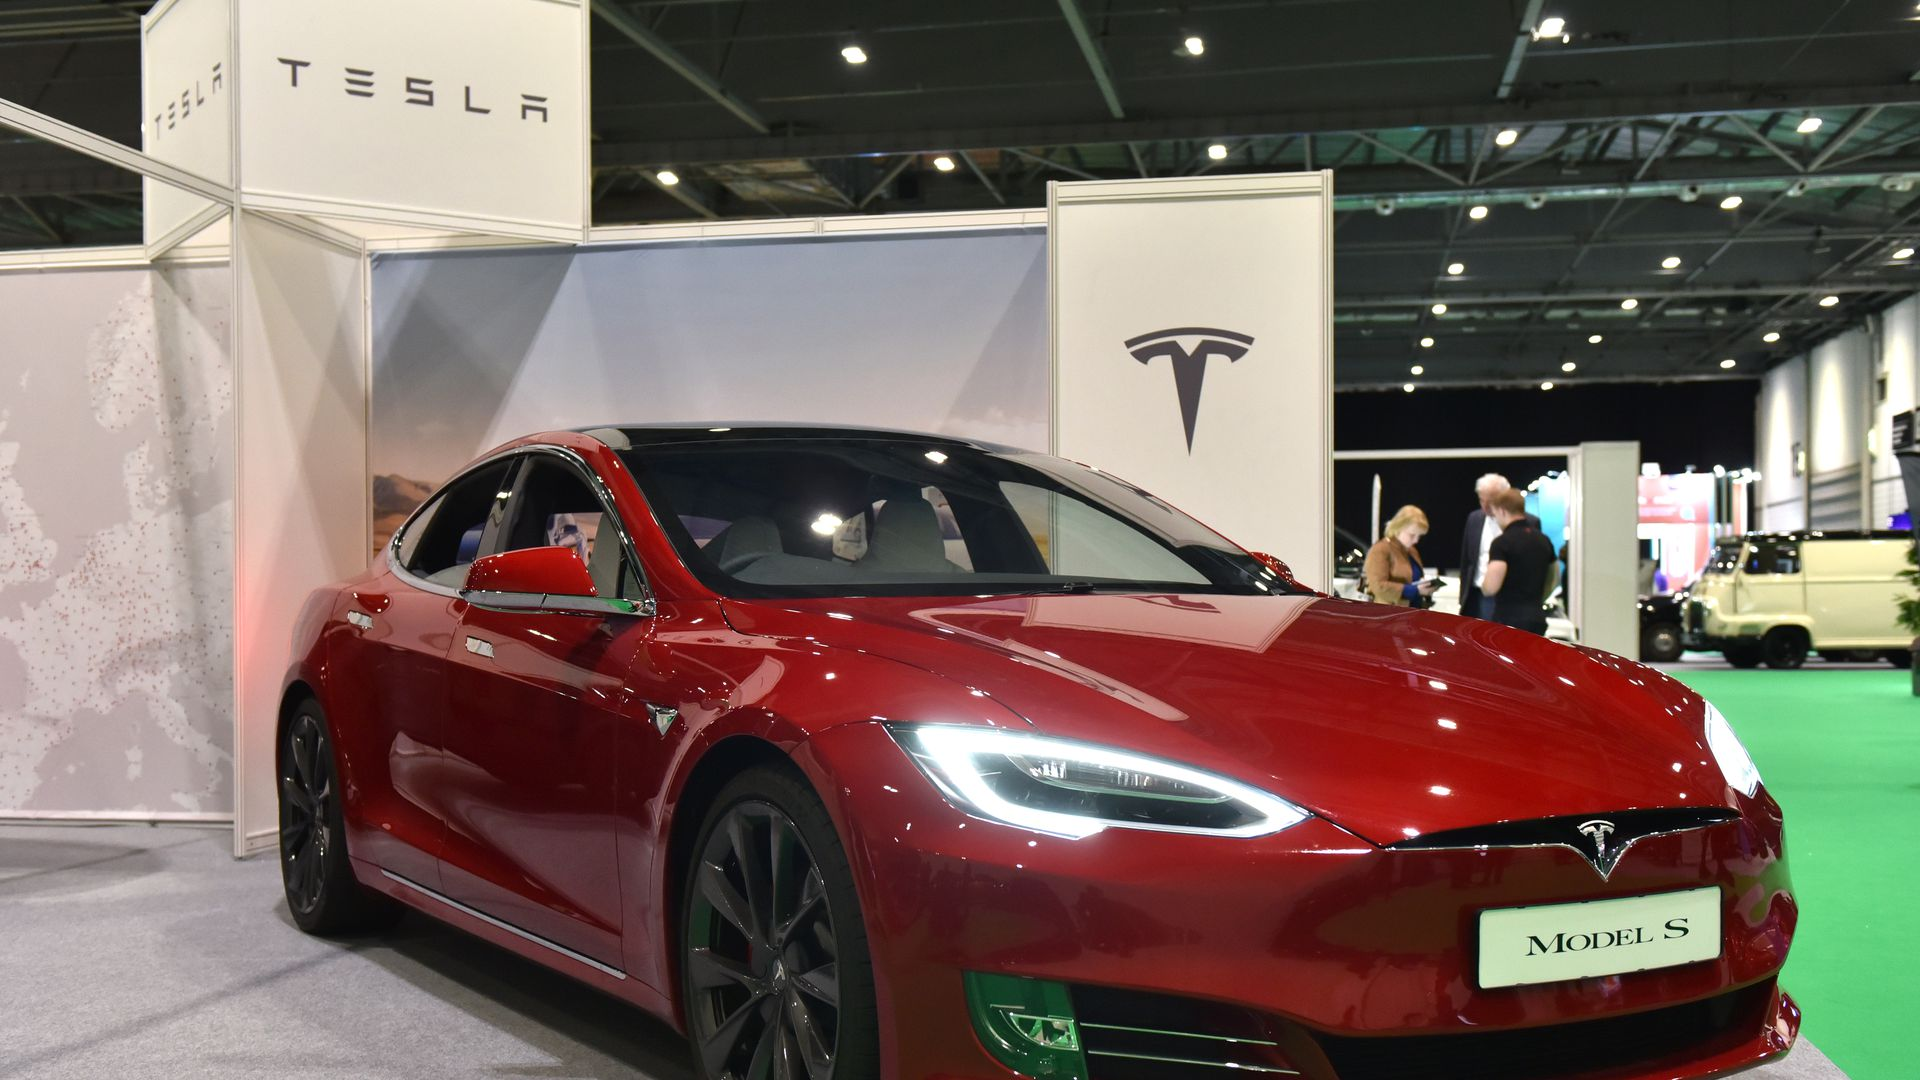 Photo of Tesla Model S on display